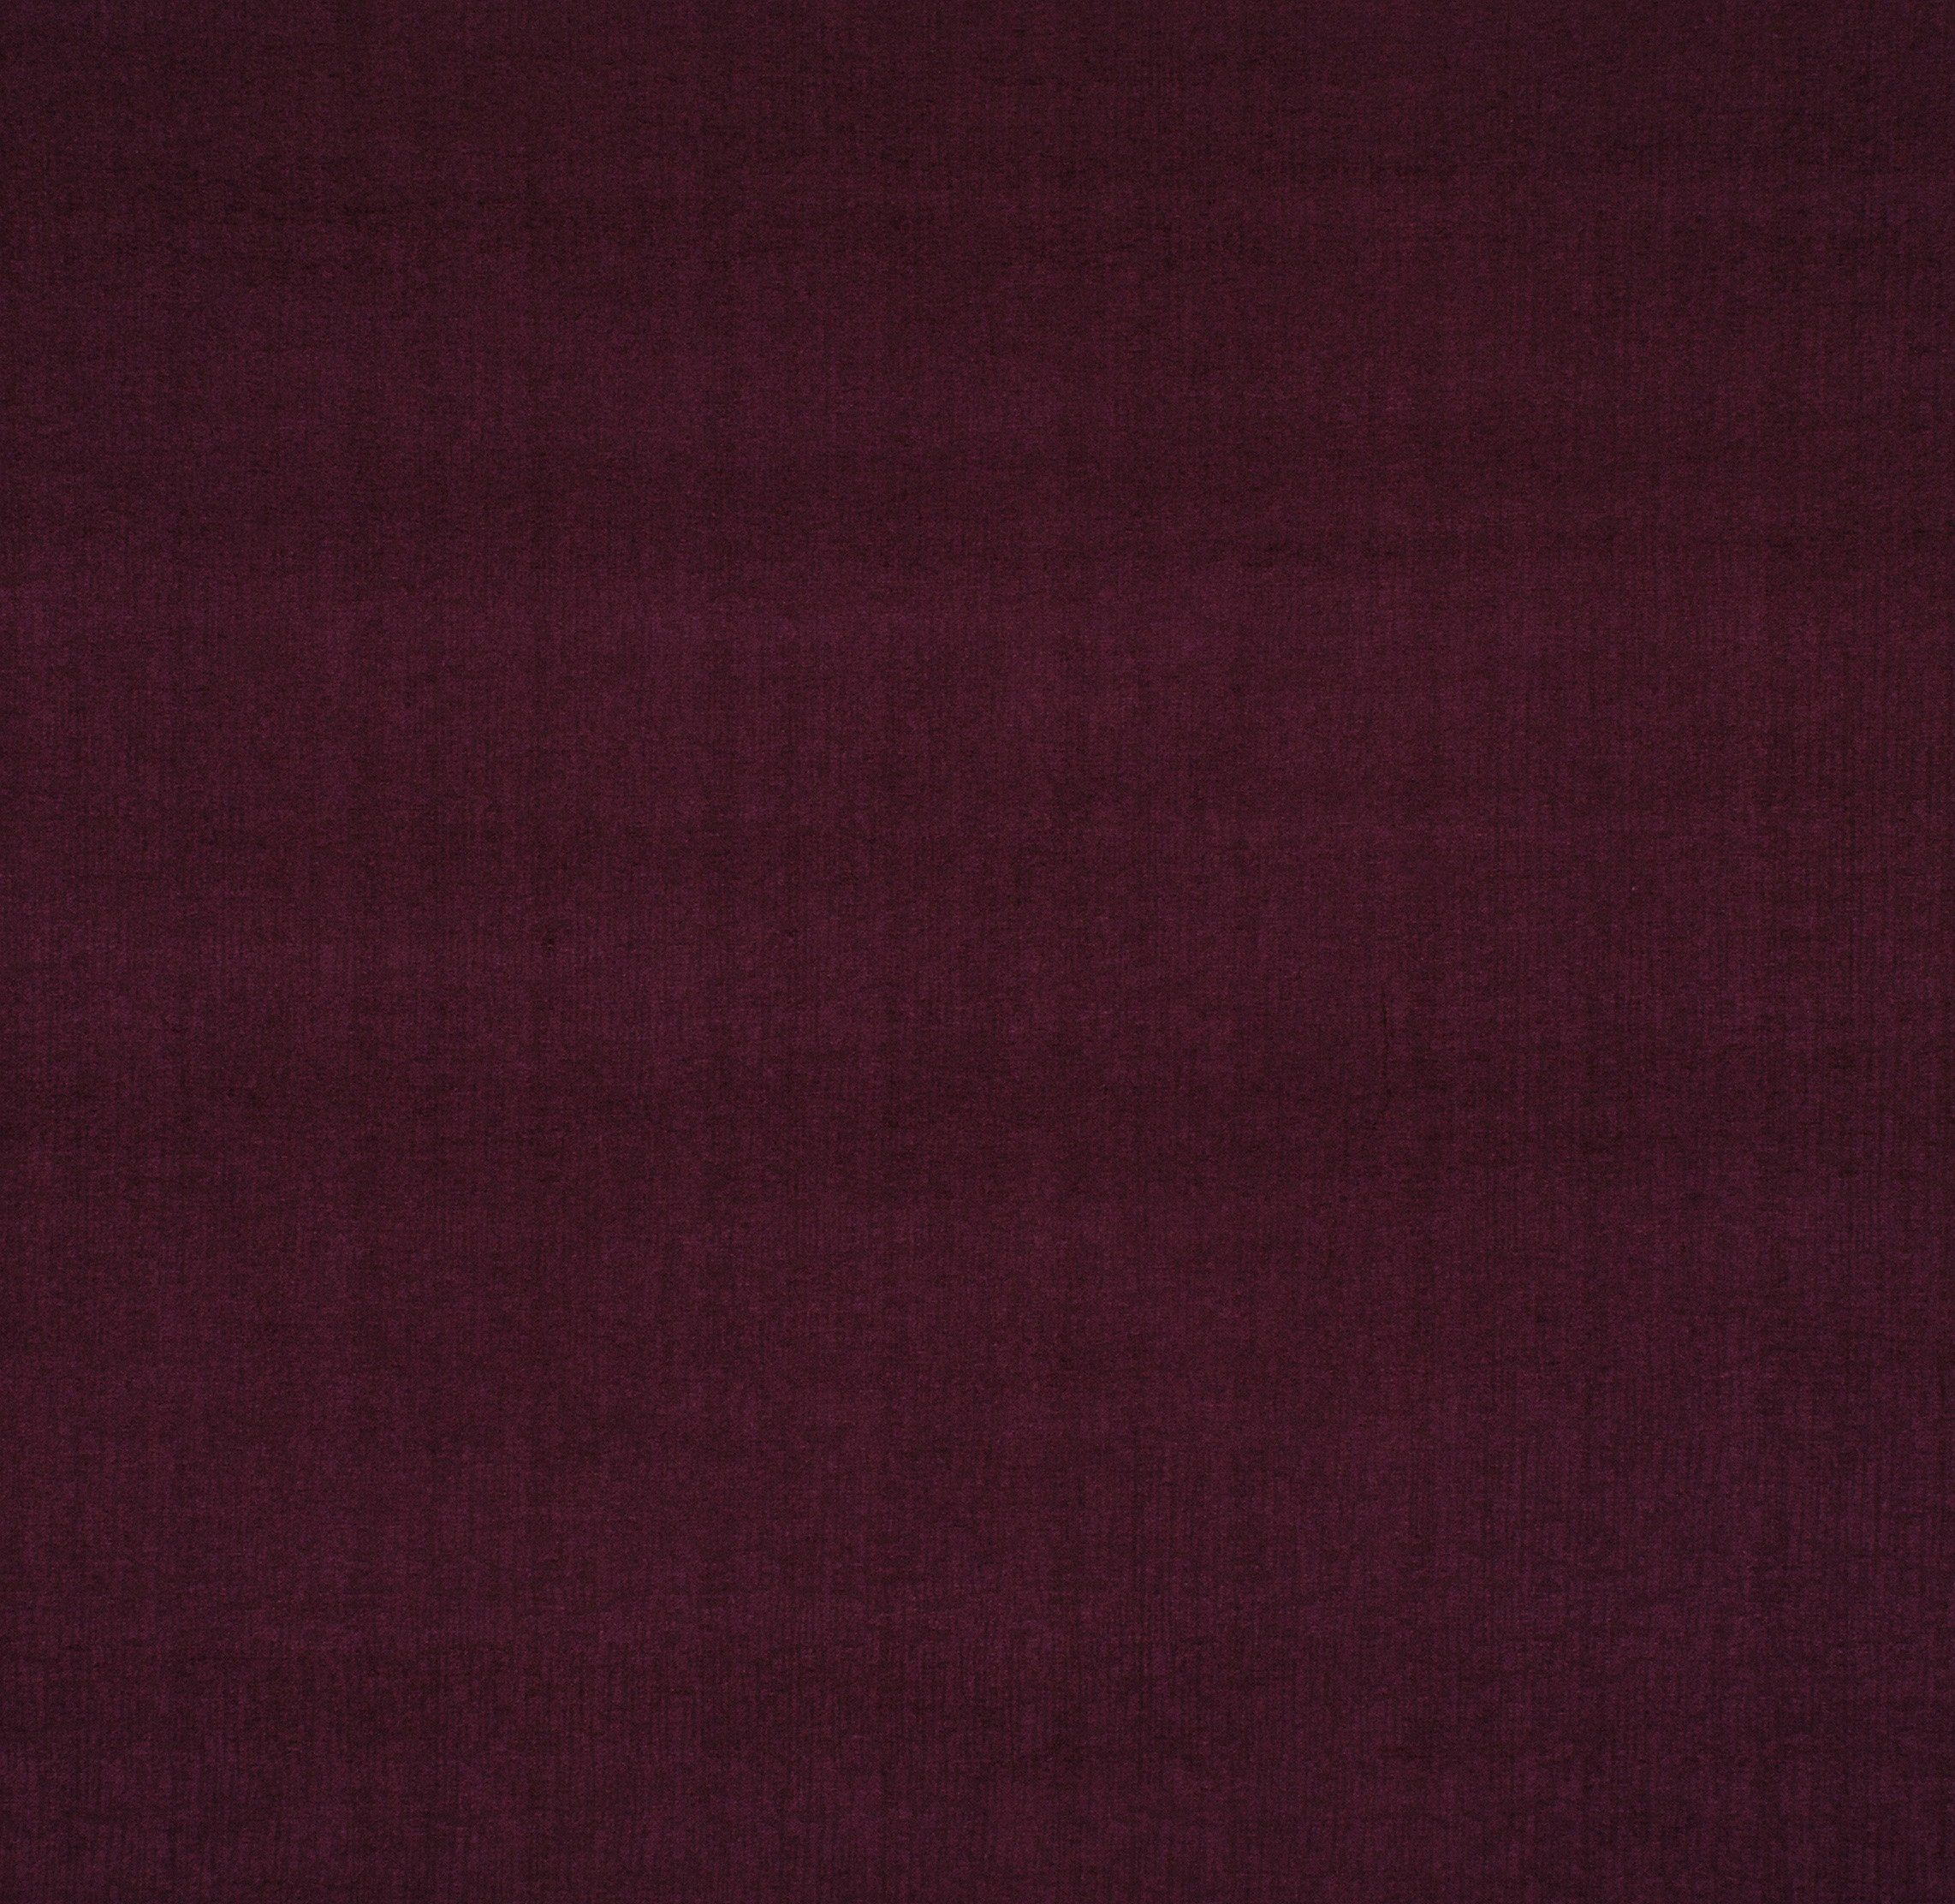 Reddish Purple Aka Aubergine Wallpapers Pinterest Accent Pieces Bedrooms And Basements